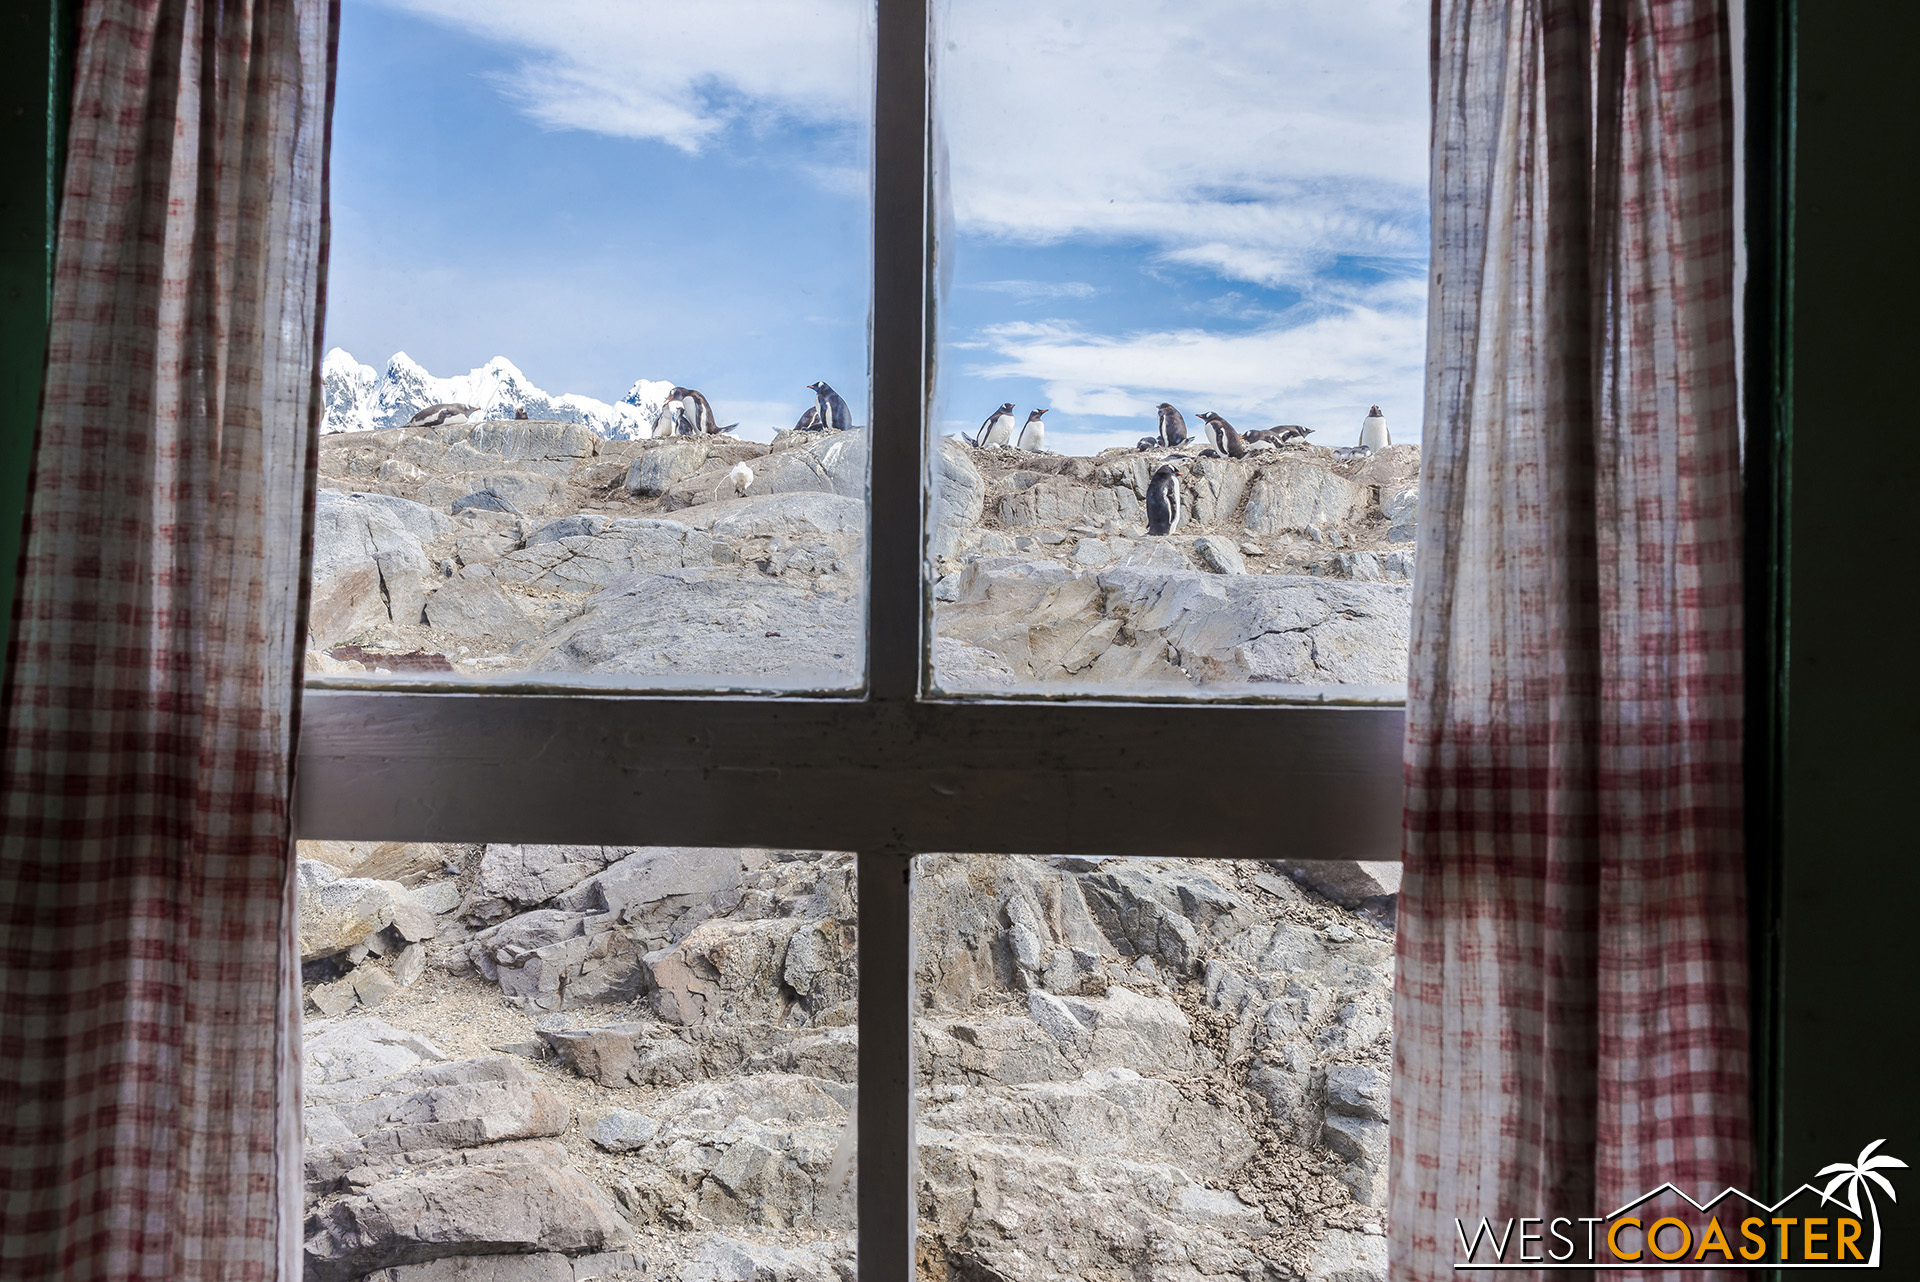 Imagine having a penguin view outside the window everyday!